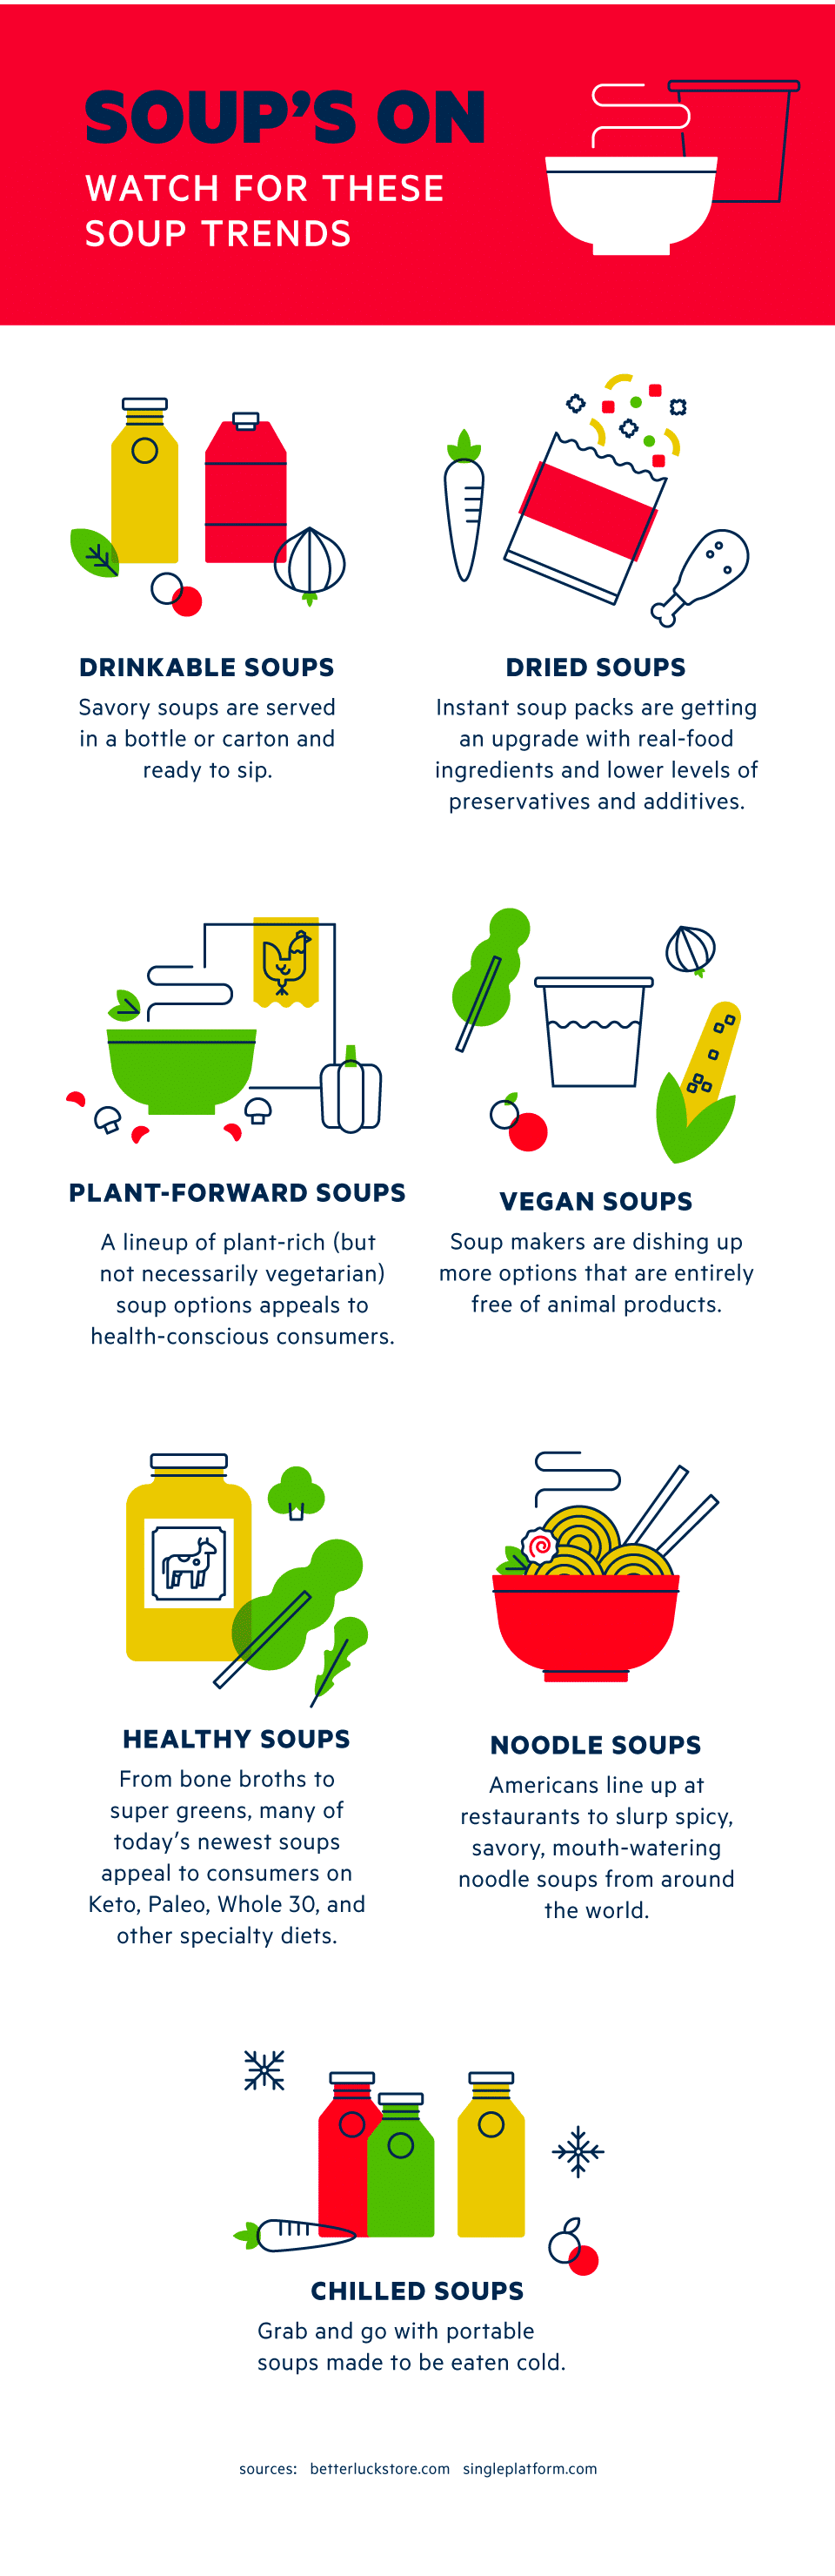 Soup's On - Watch for These Soup Trends